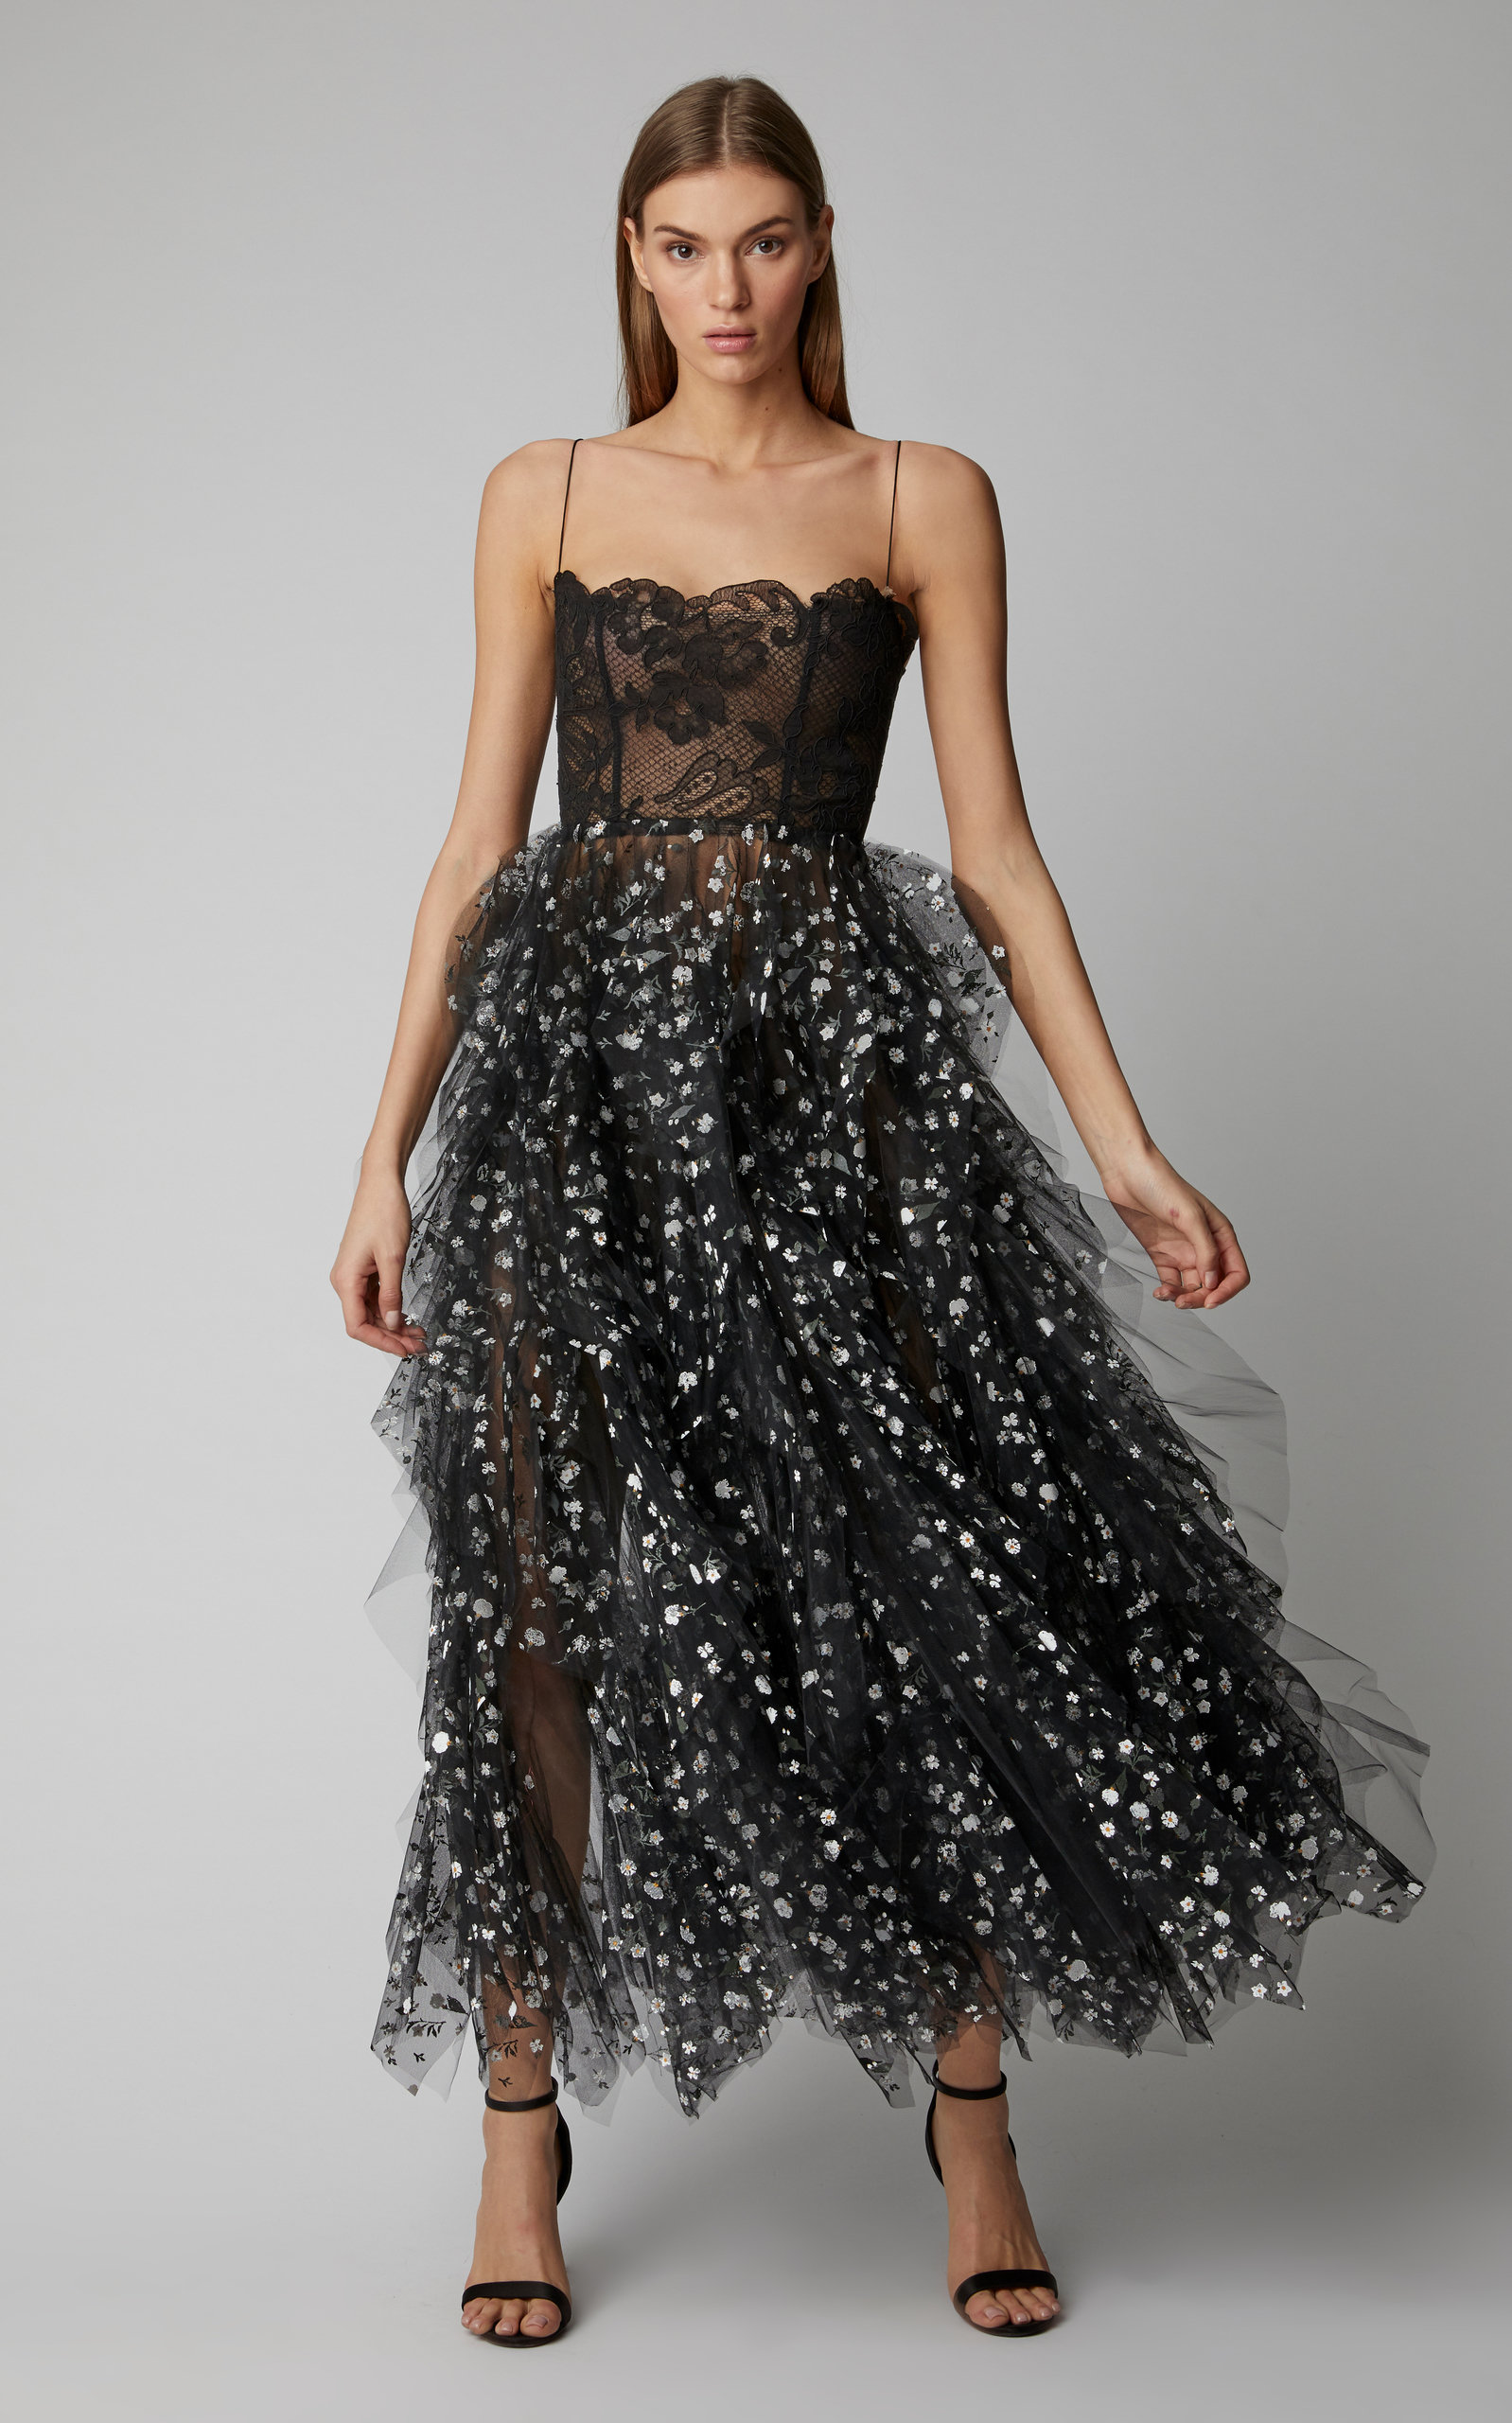 2aab11dc0cae Oscar de la RentaSequin-Embellished Lace and Tulle Midi Dress. CLOSE.  Loading